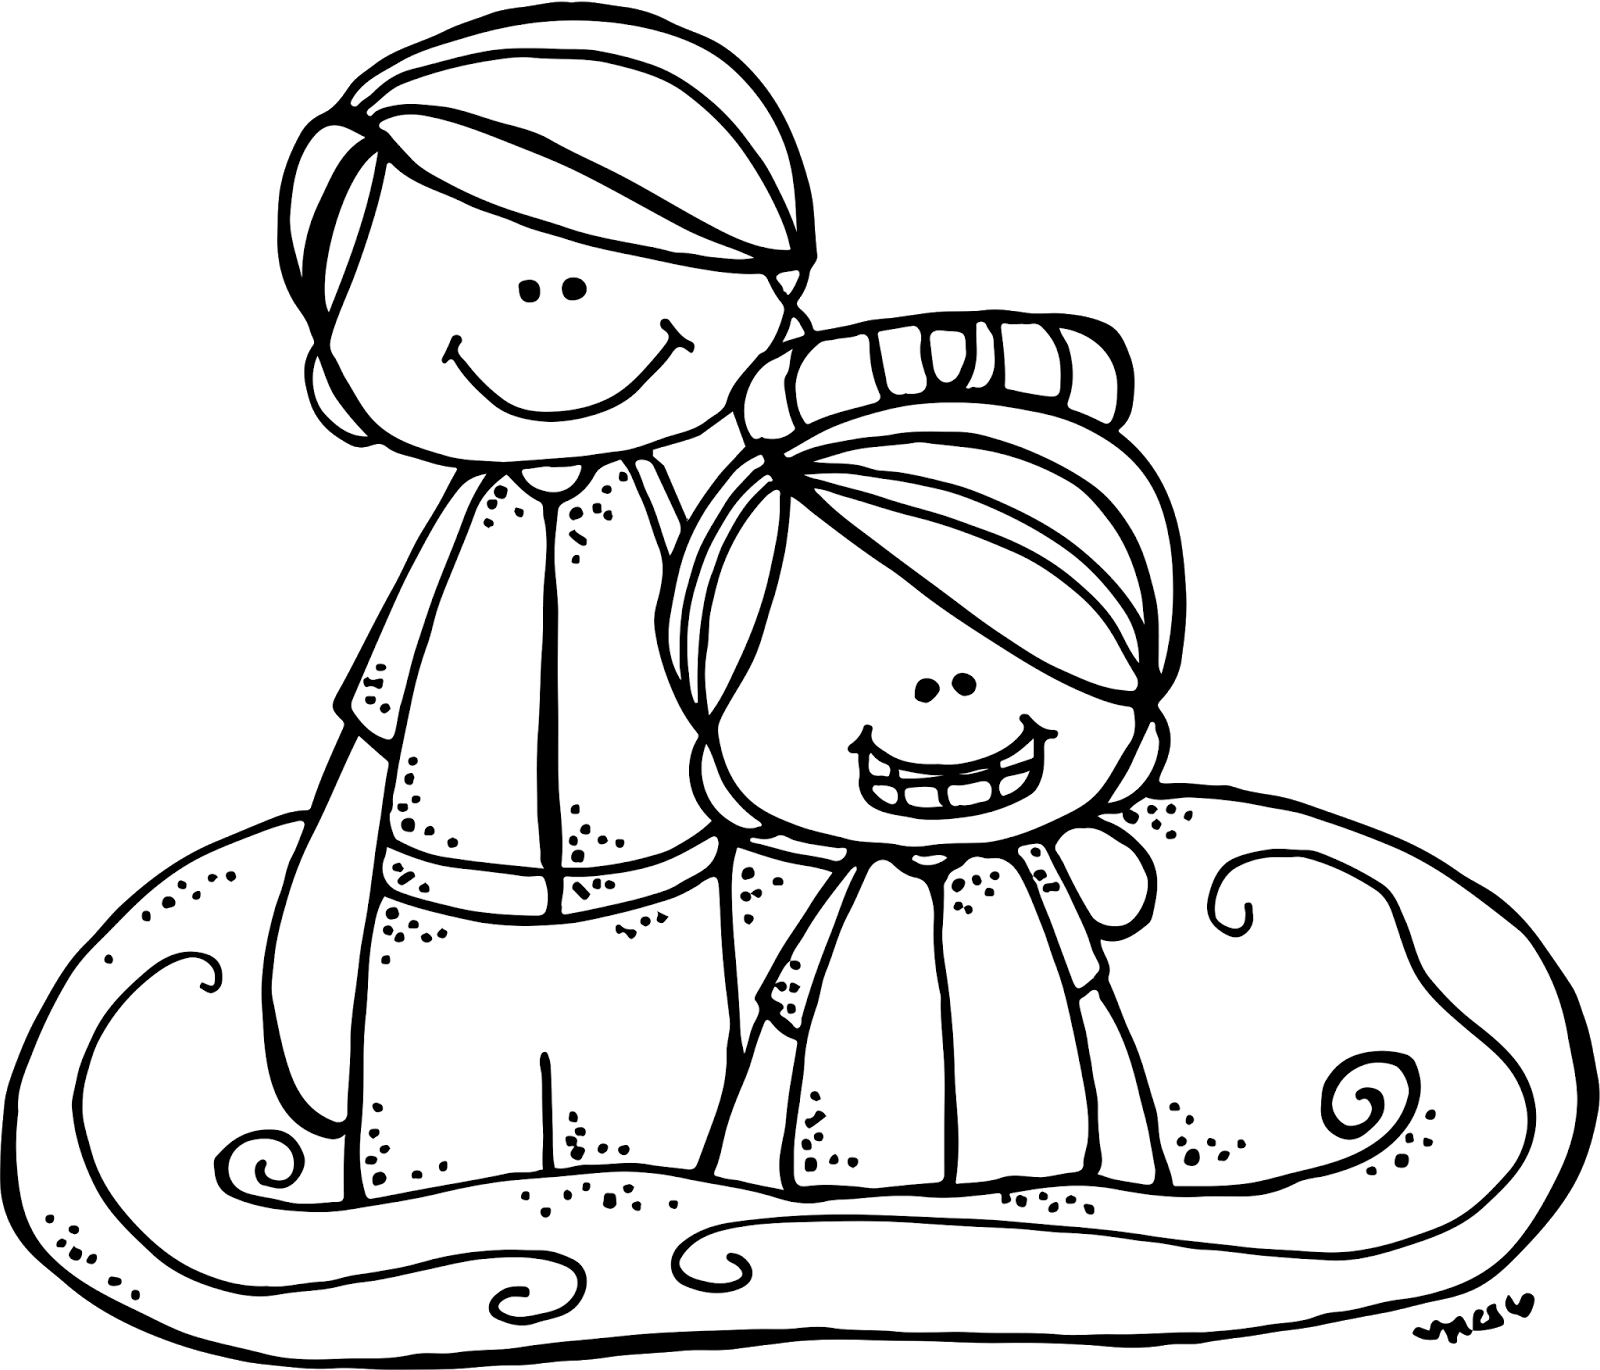 graphic royalty free stock Melonheadz illustrating more stuff. Baptism clipart baptism lds.